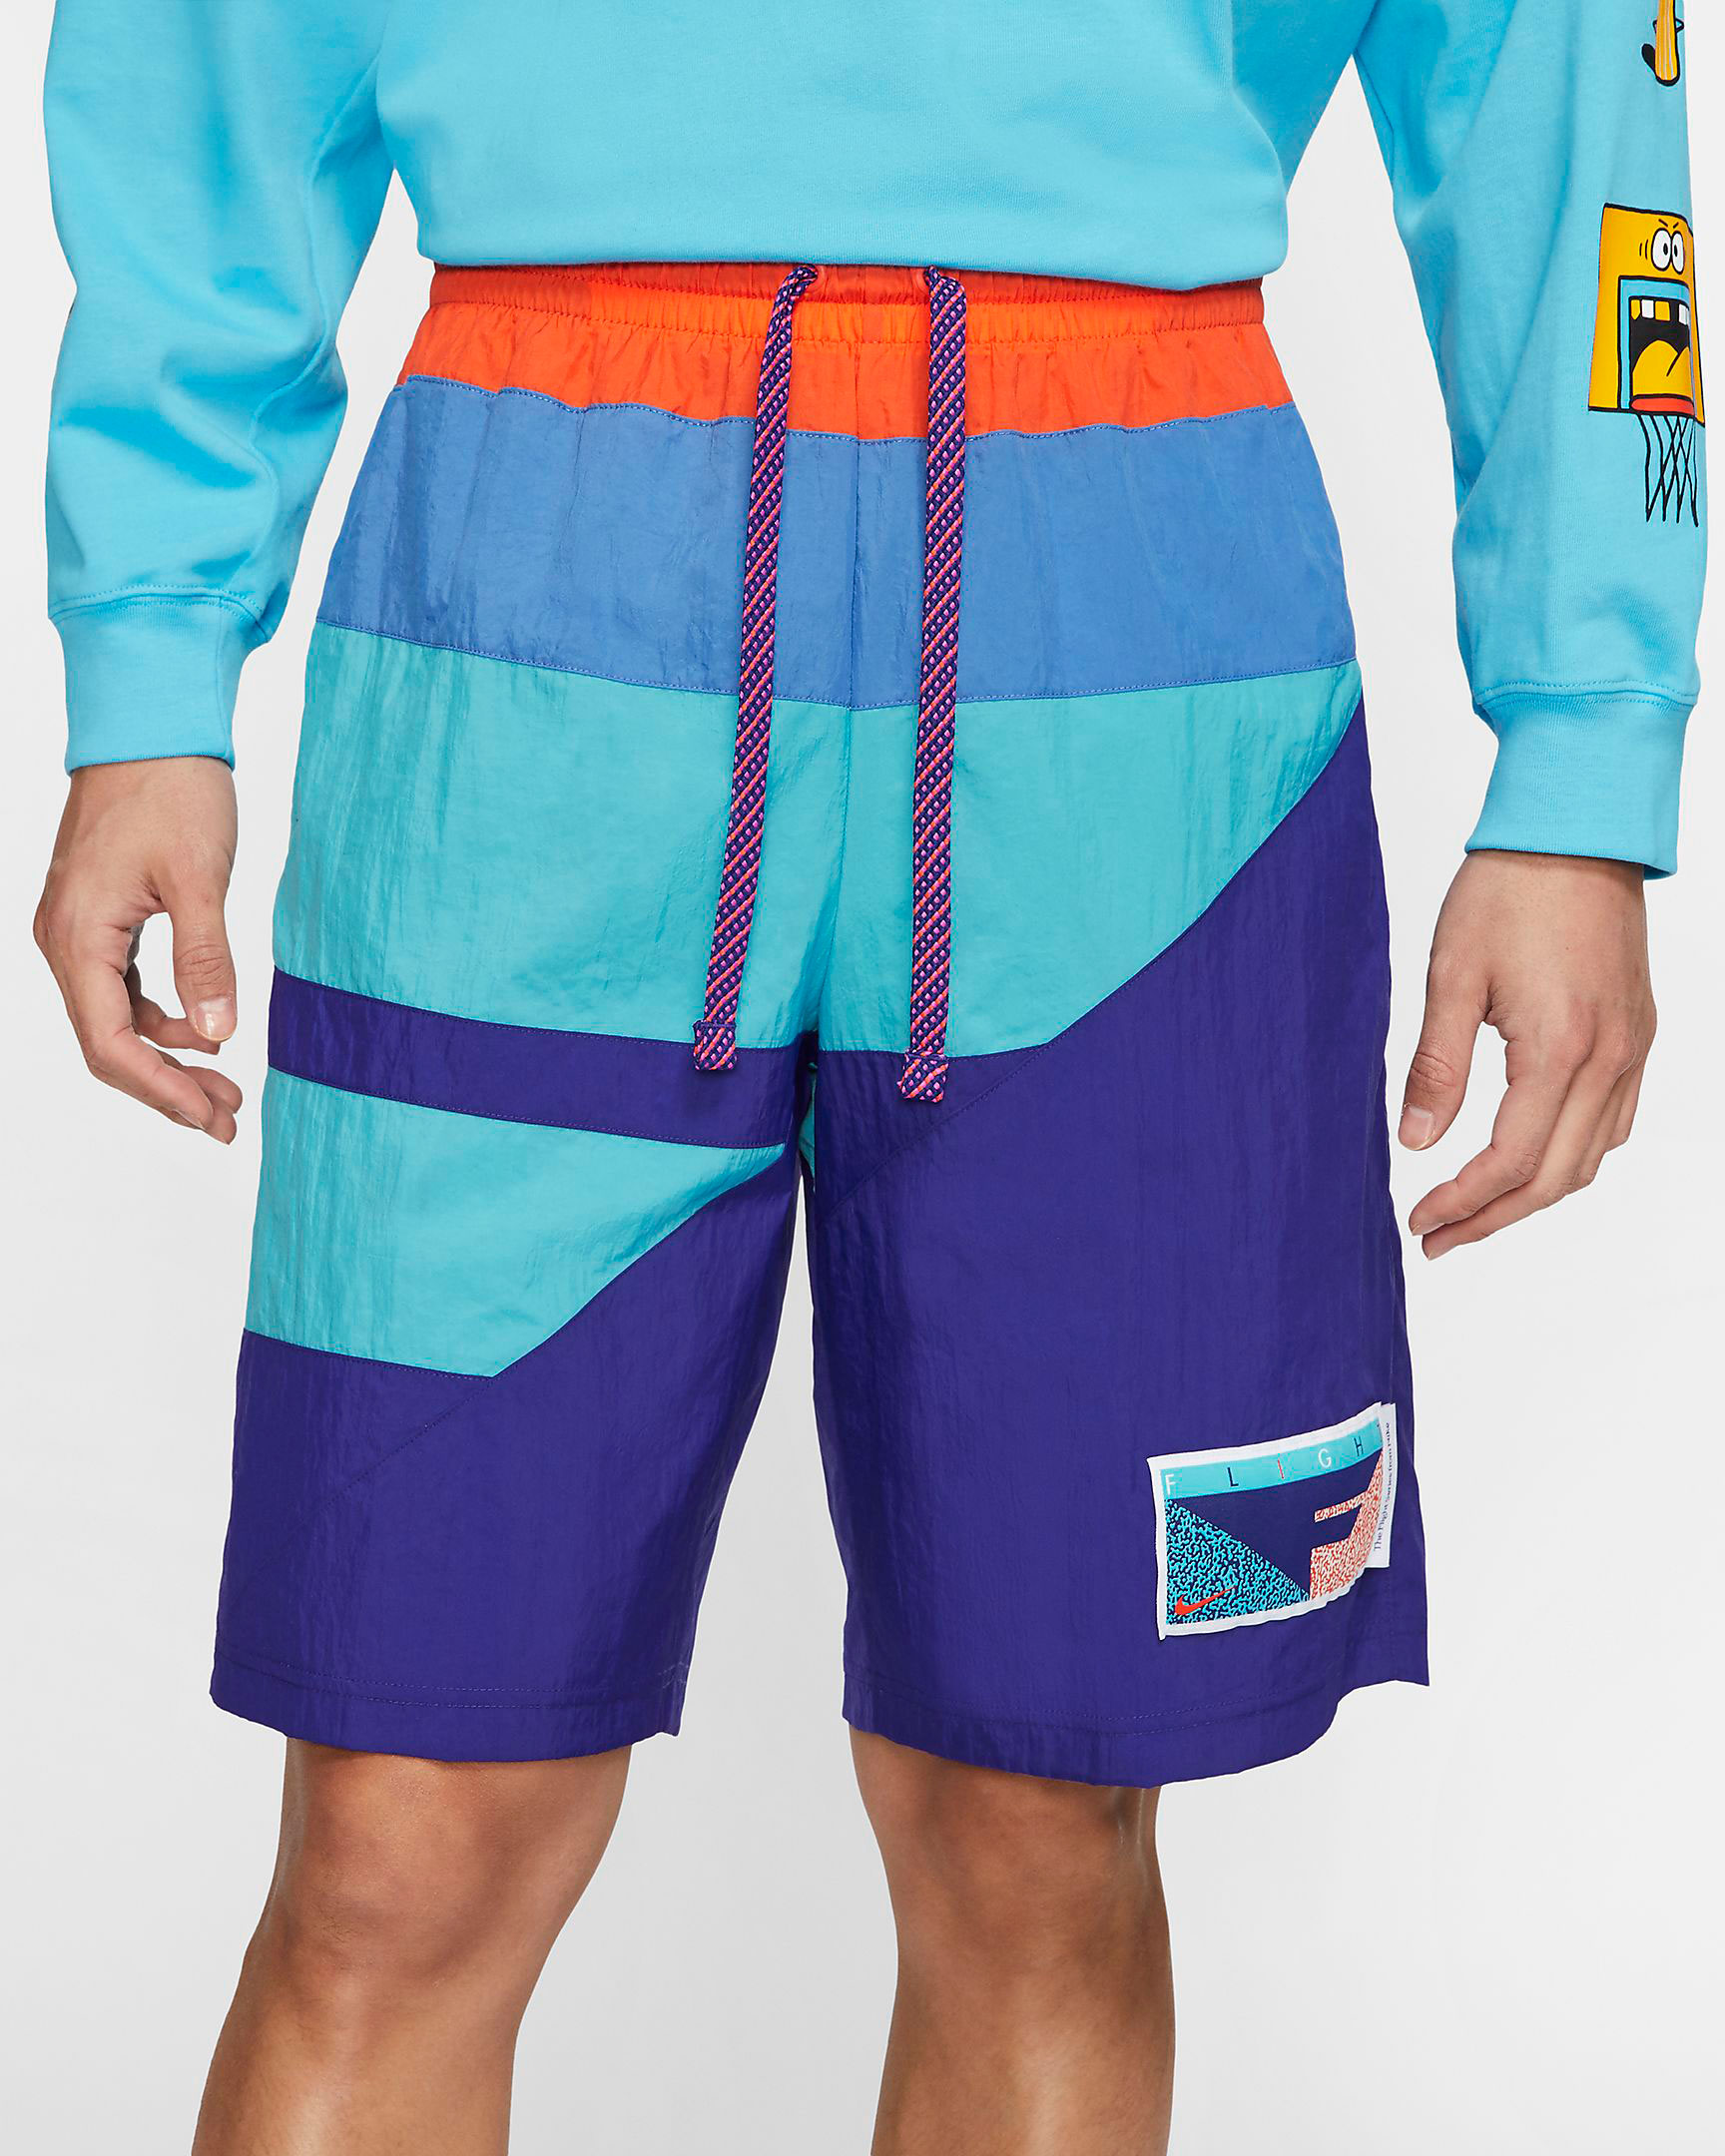 nike-flight-purple-teal-aqua-shorts